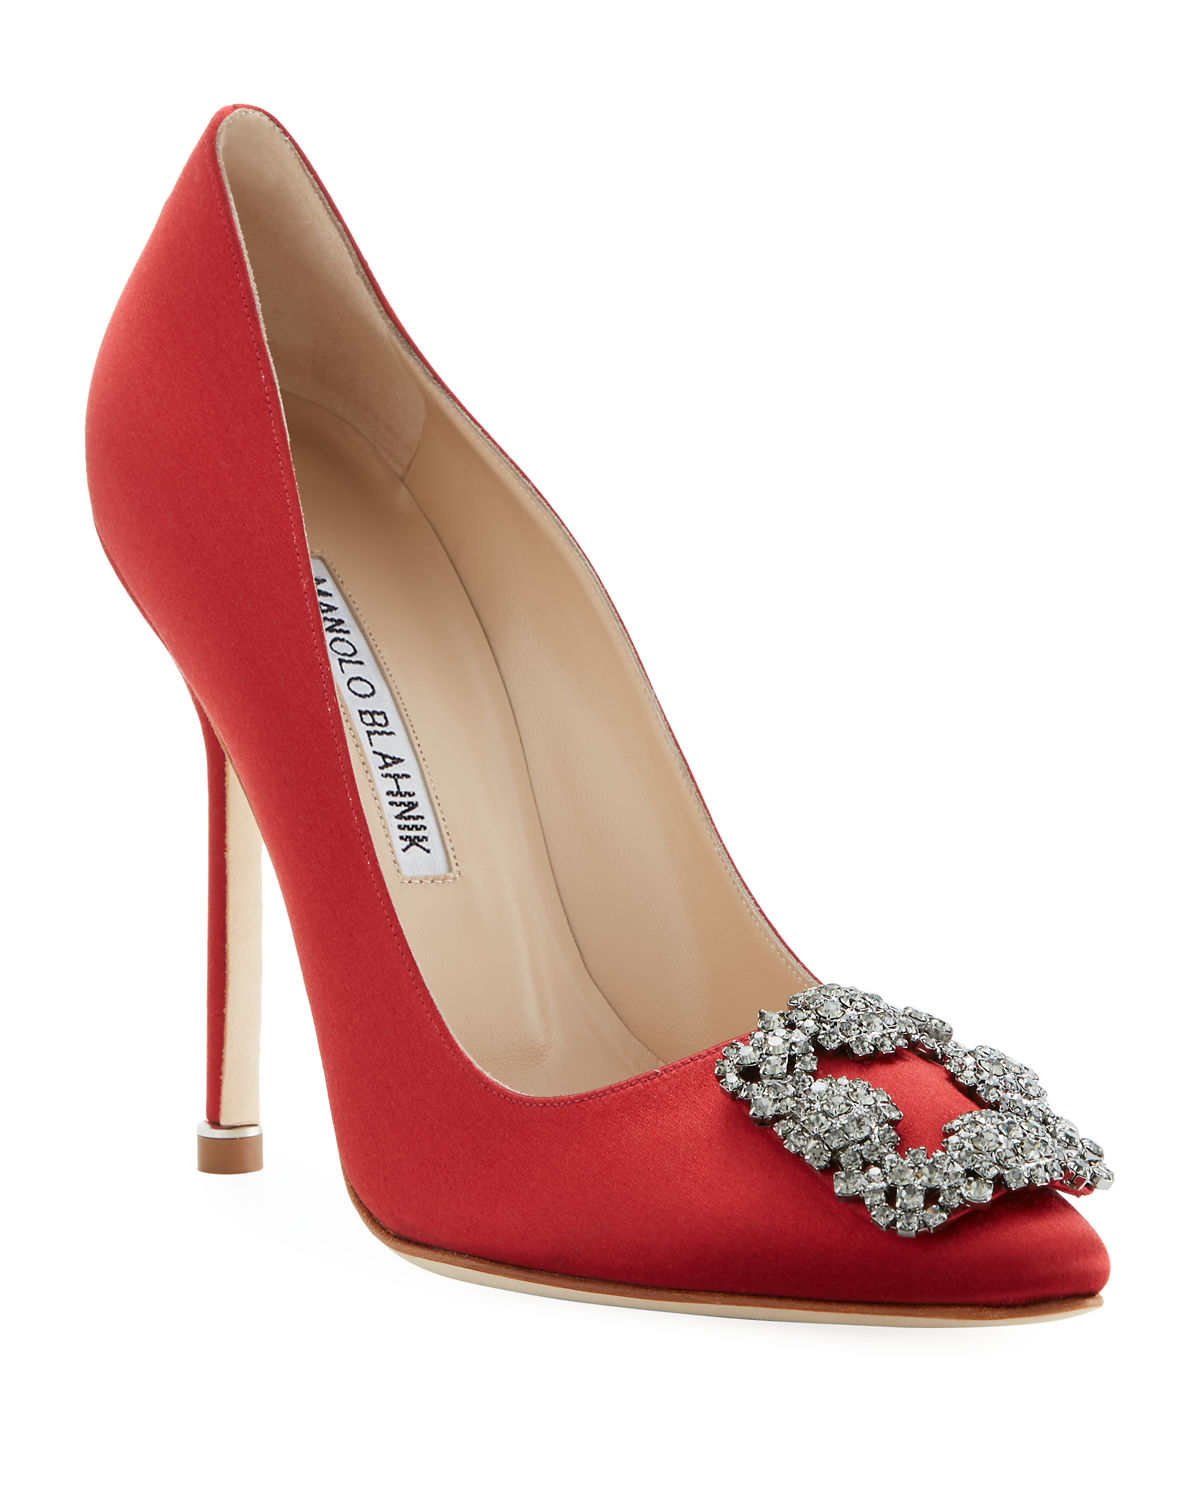 c958ca5a8276 Manolo Blahnik Hangisi 115mm Satin Crystal-Toe Pump